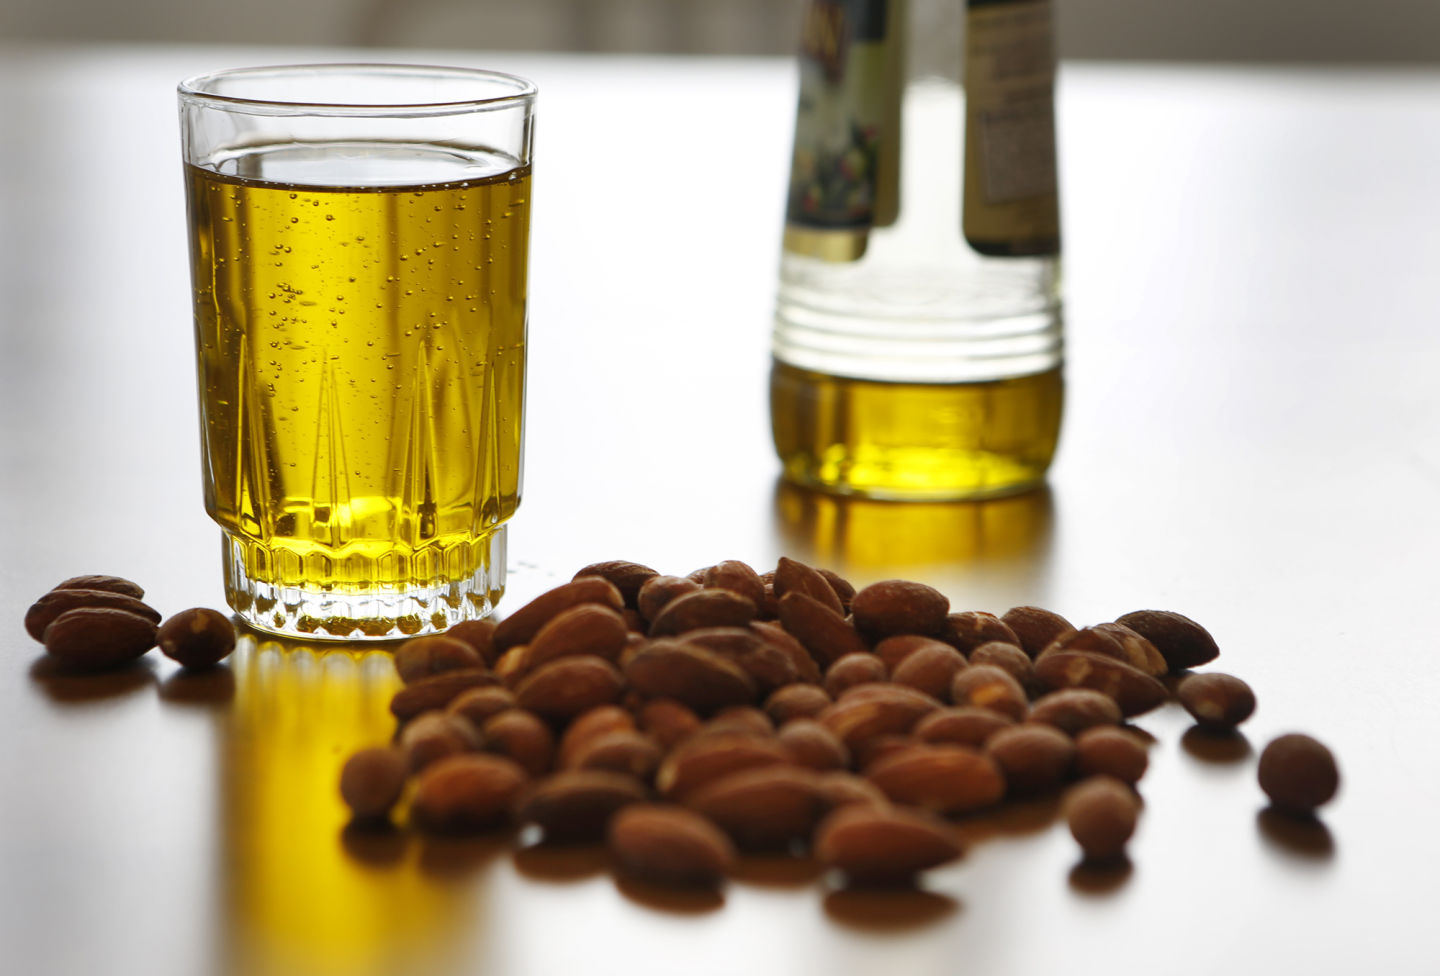 Mediterranean Diet With Extra Olive Oil May Lower Breast Cancer Risk